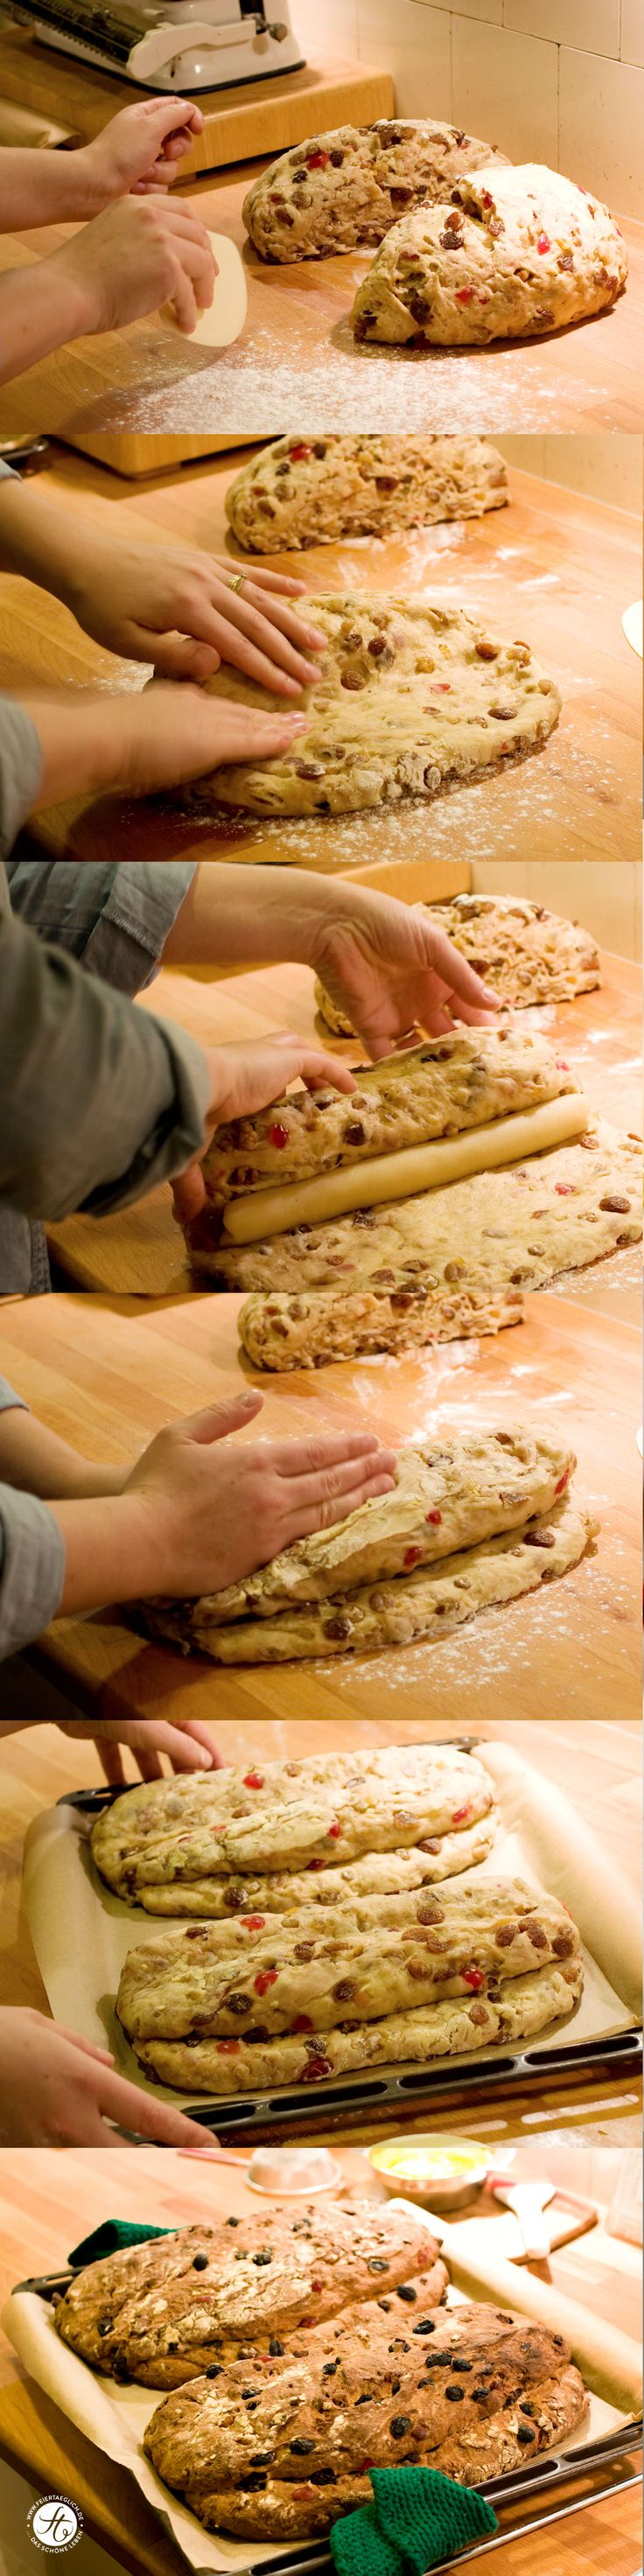 Oma Leipzig's Original Christstollen from Dresden | celebration day ... the good life